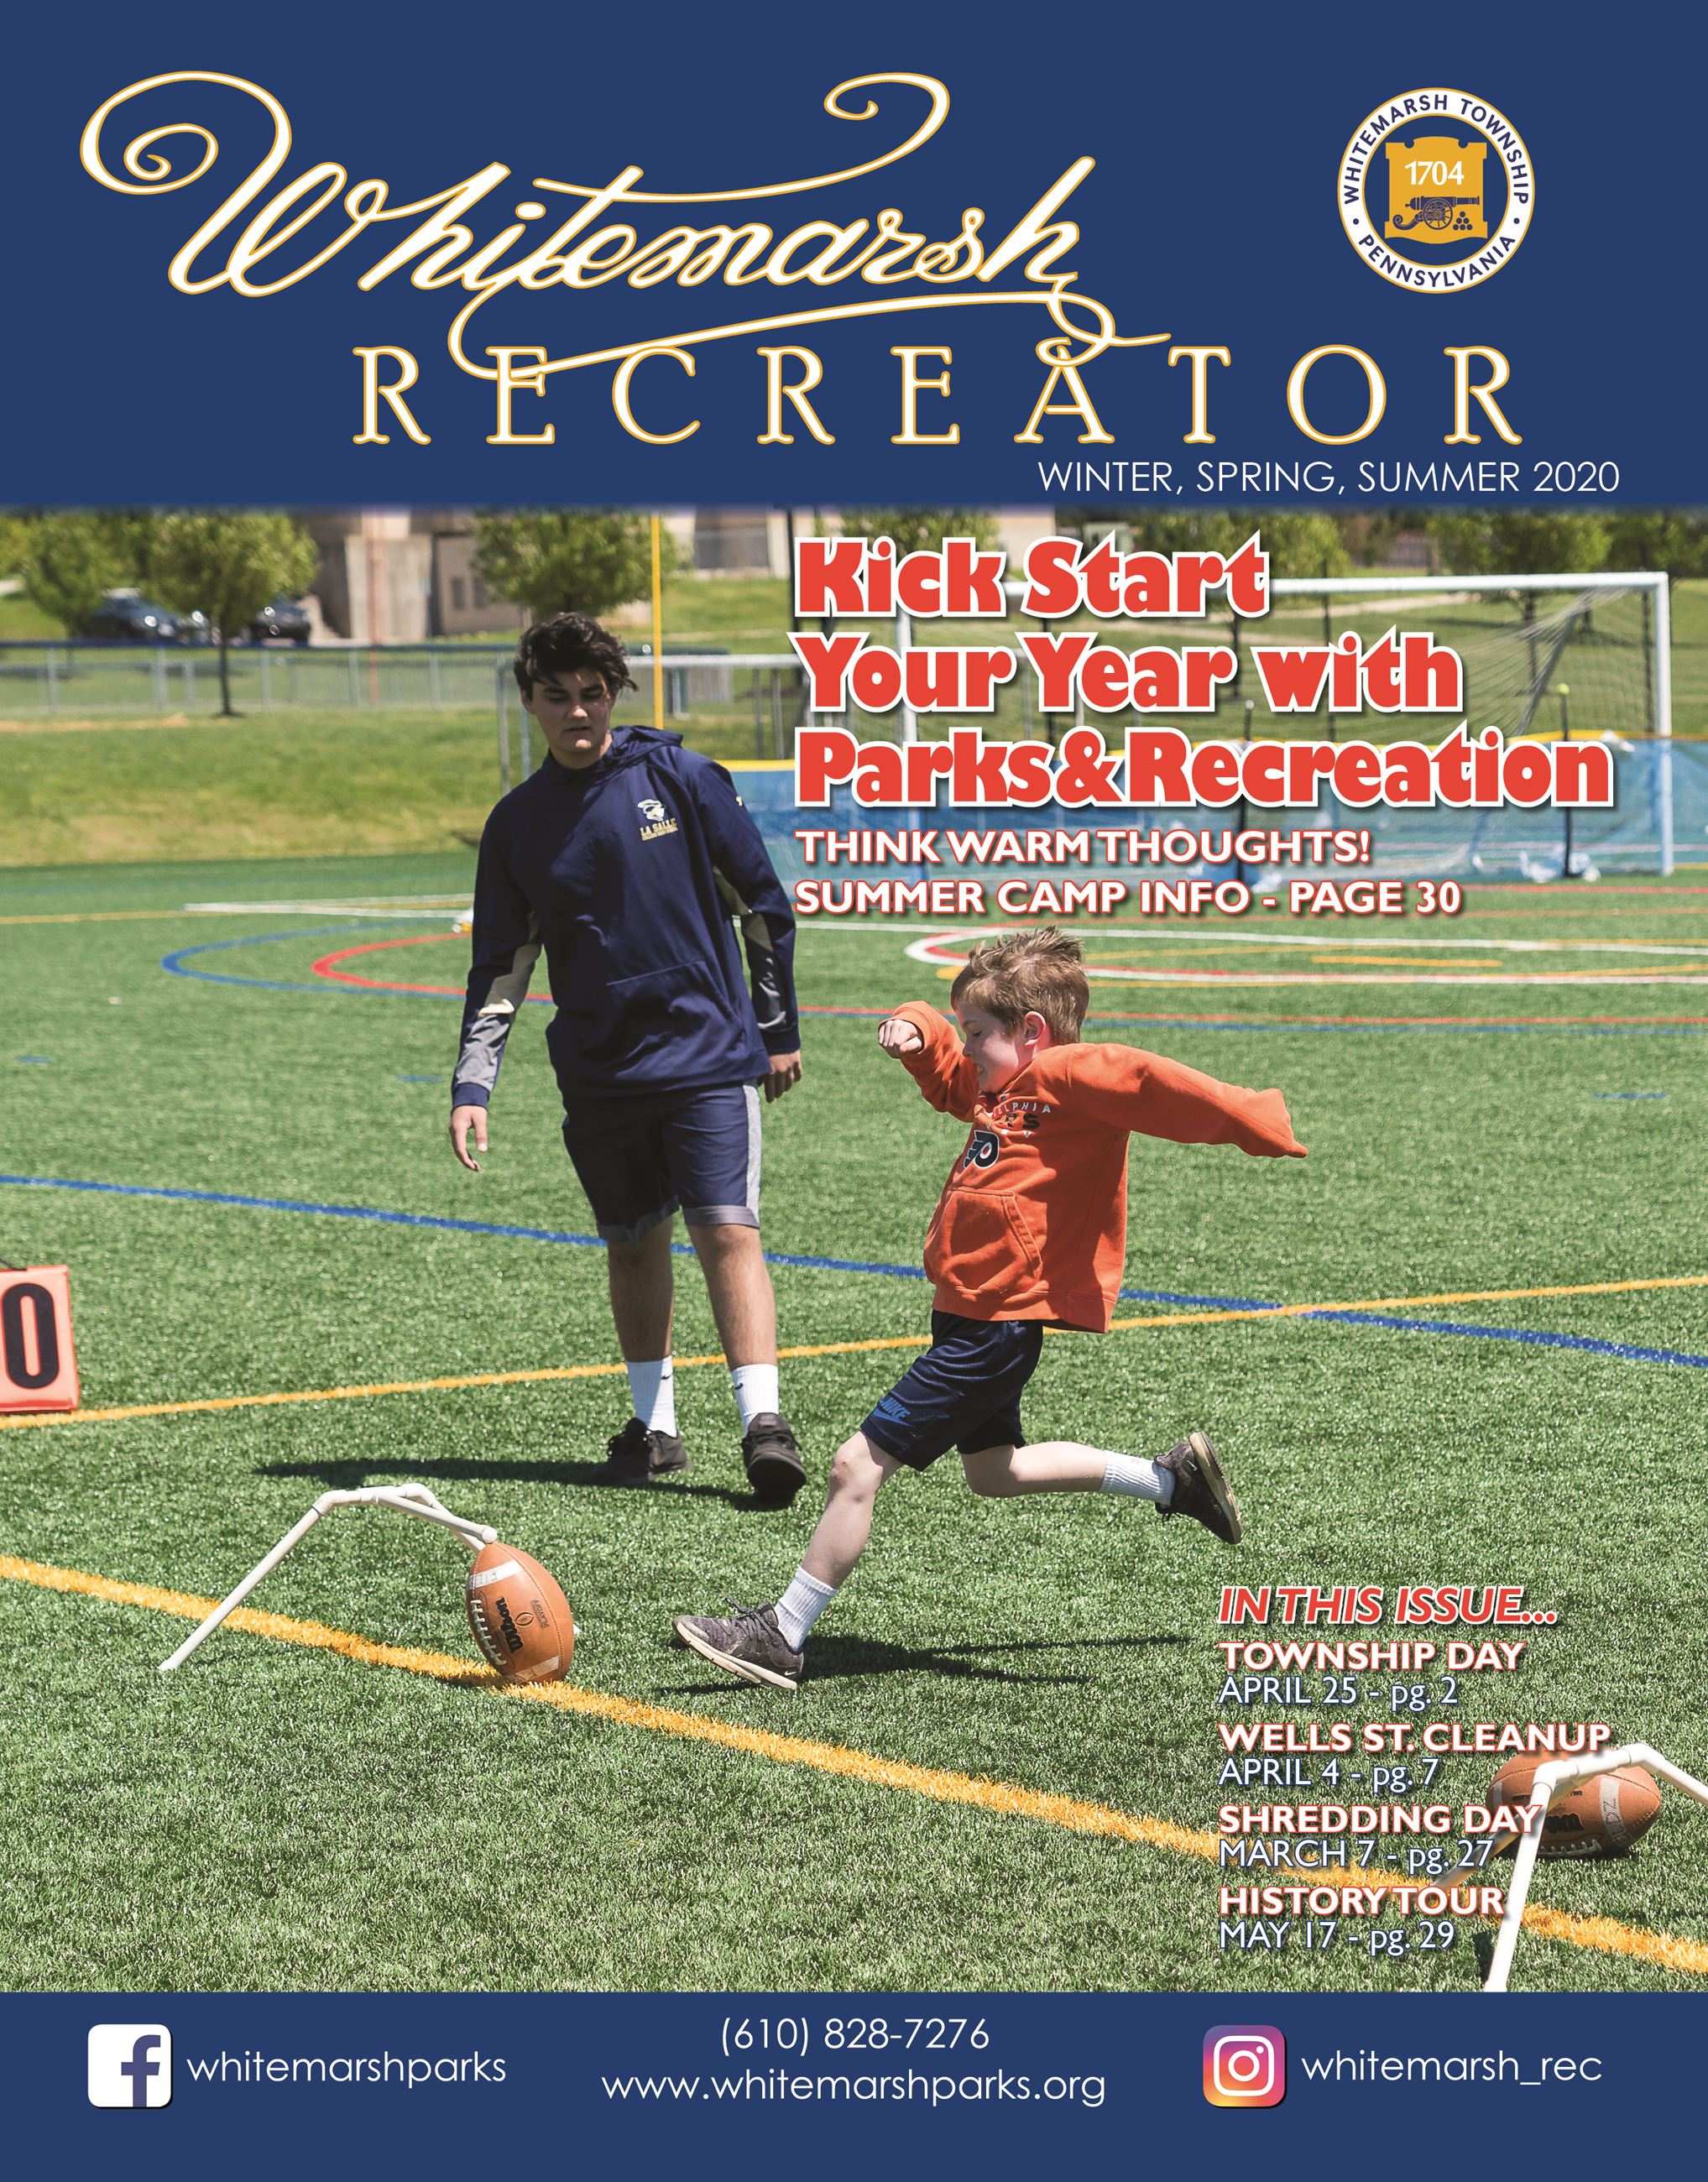 2019 Fall Recreator Cover